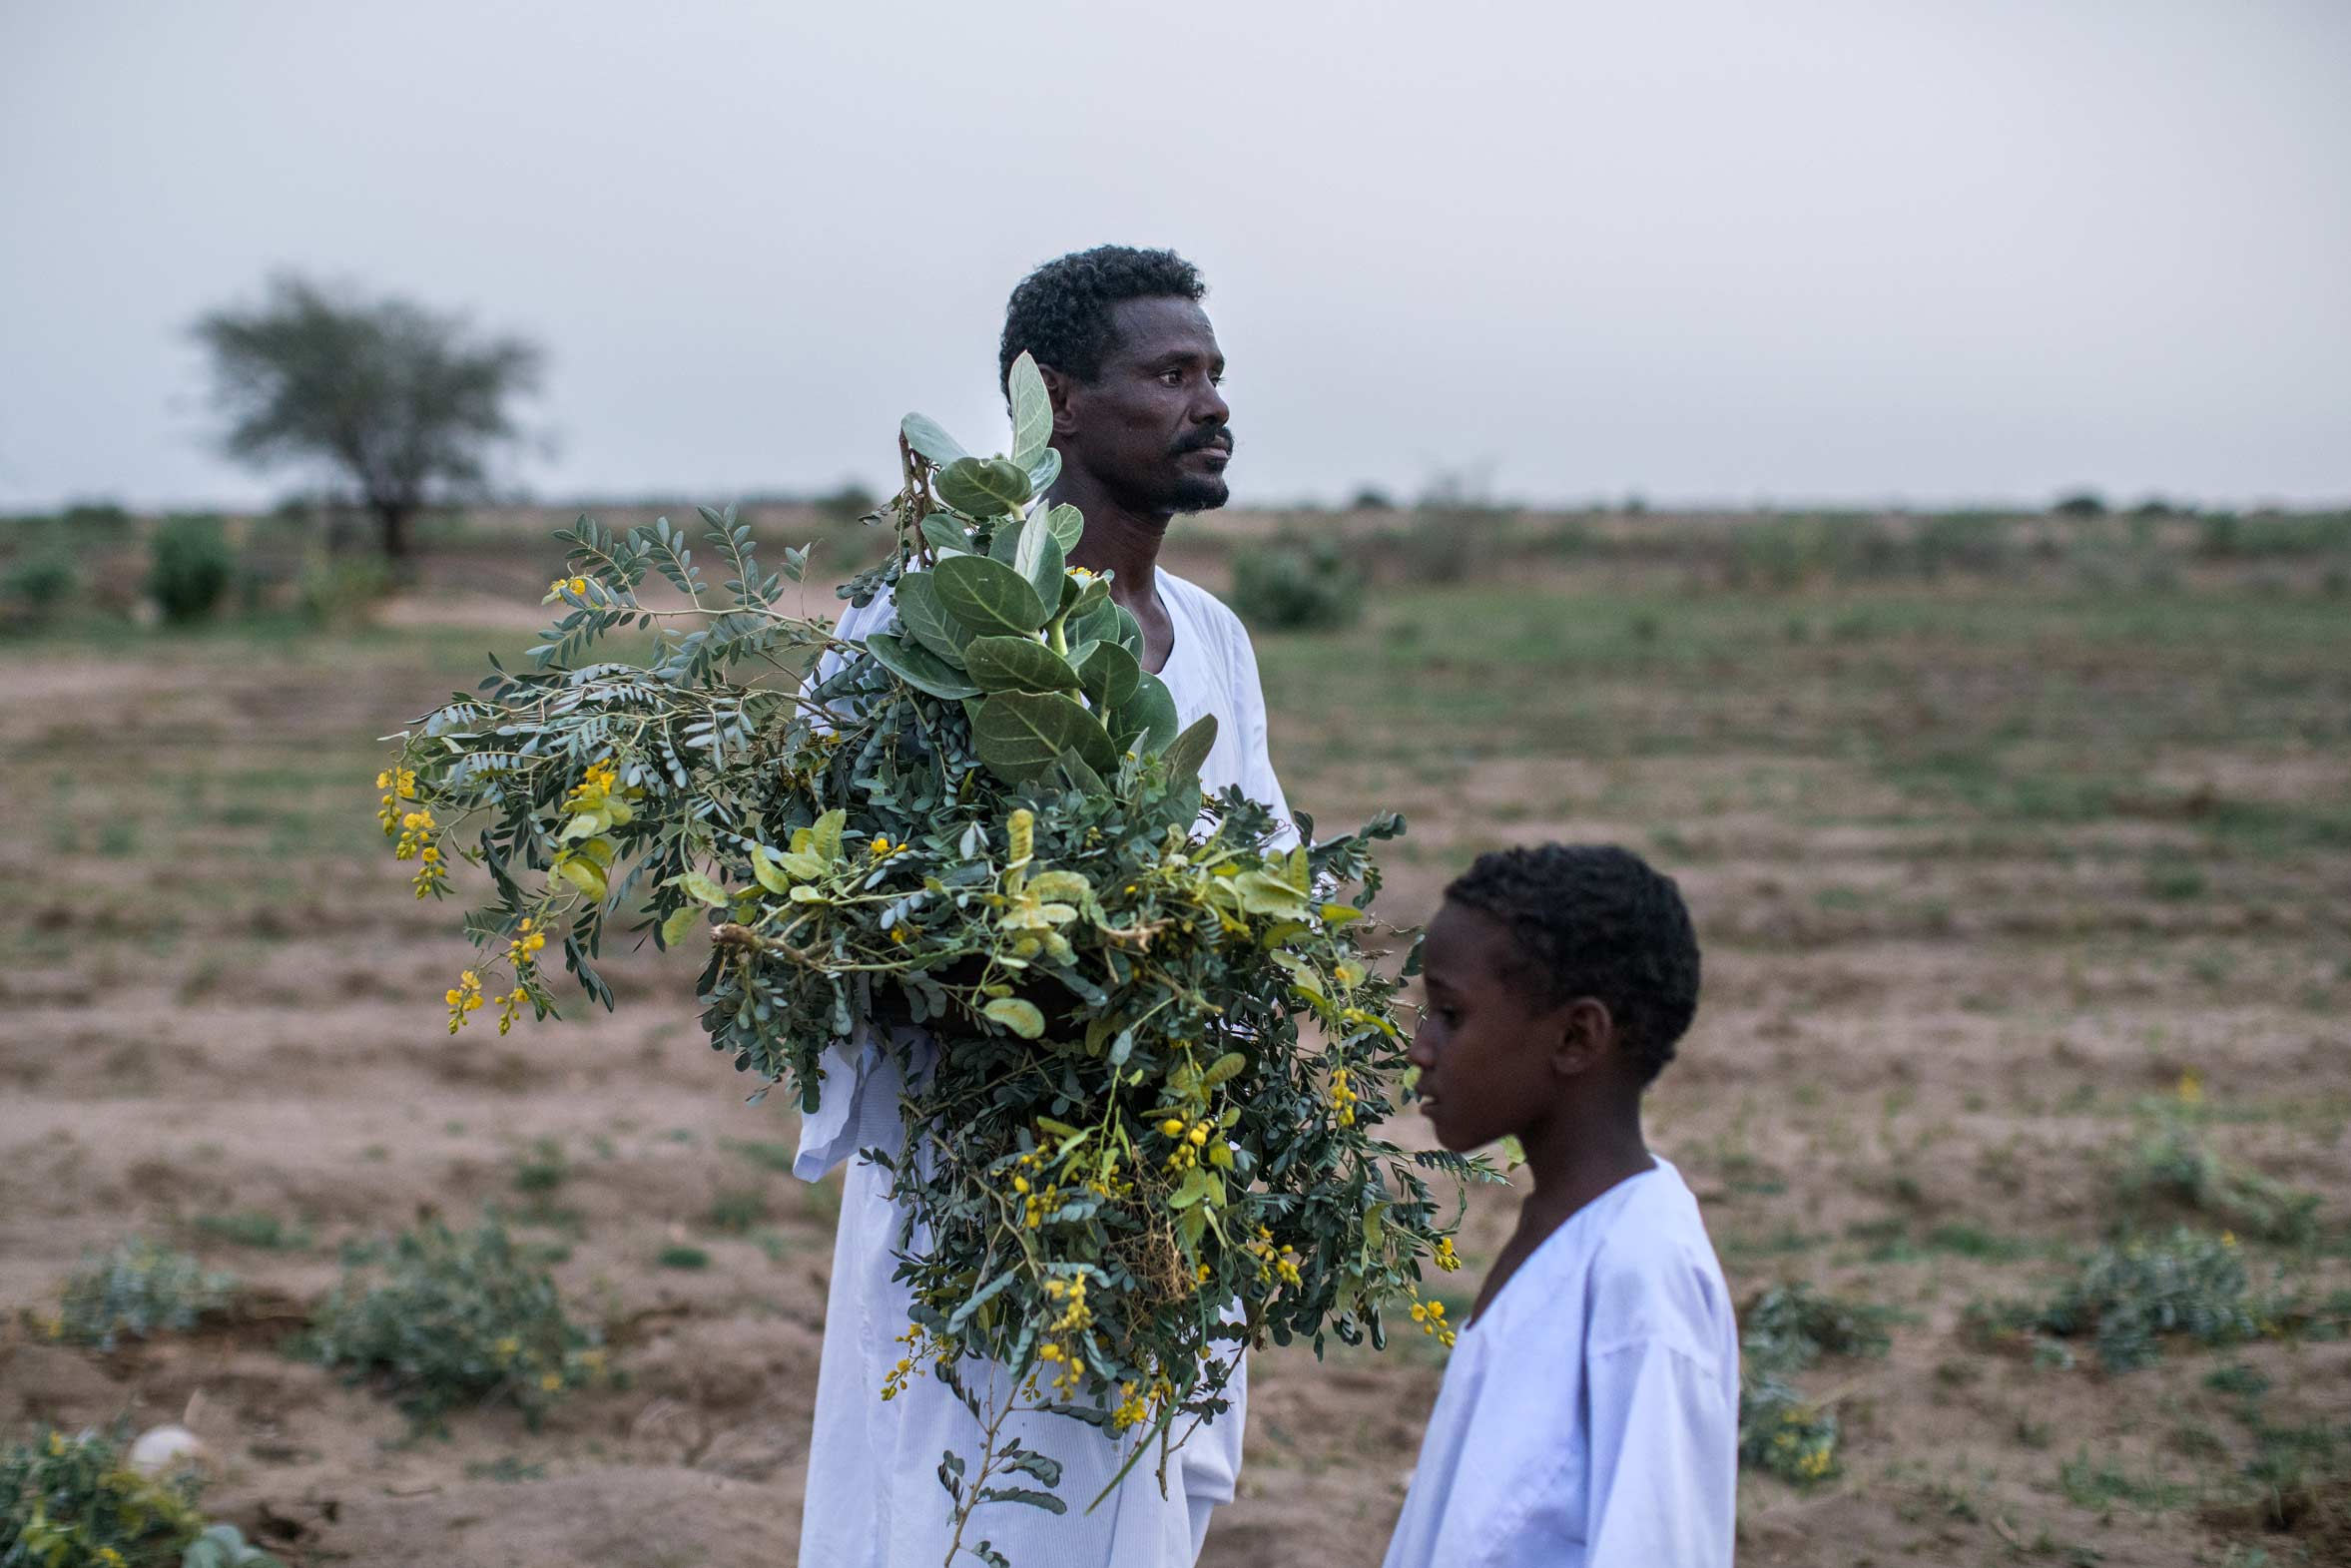 One of Africa's Most Fertile Lands Is Struggling to Feed Its